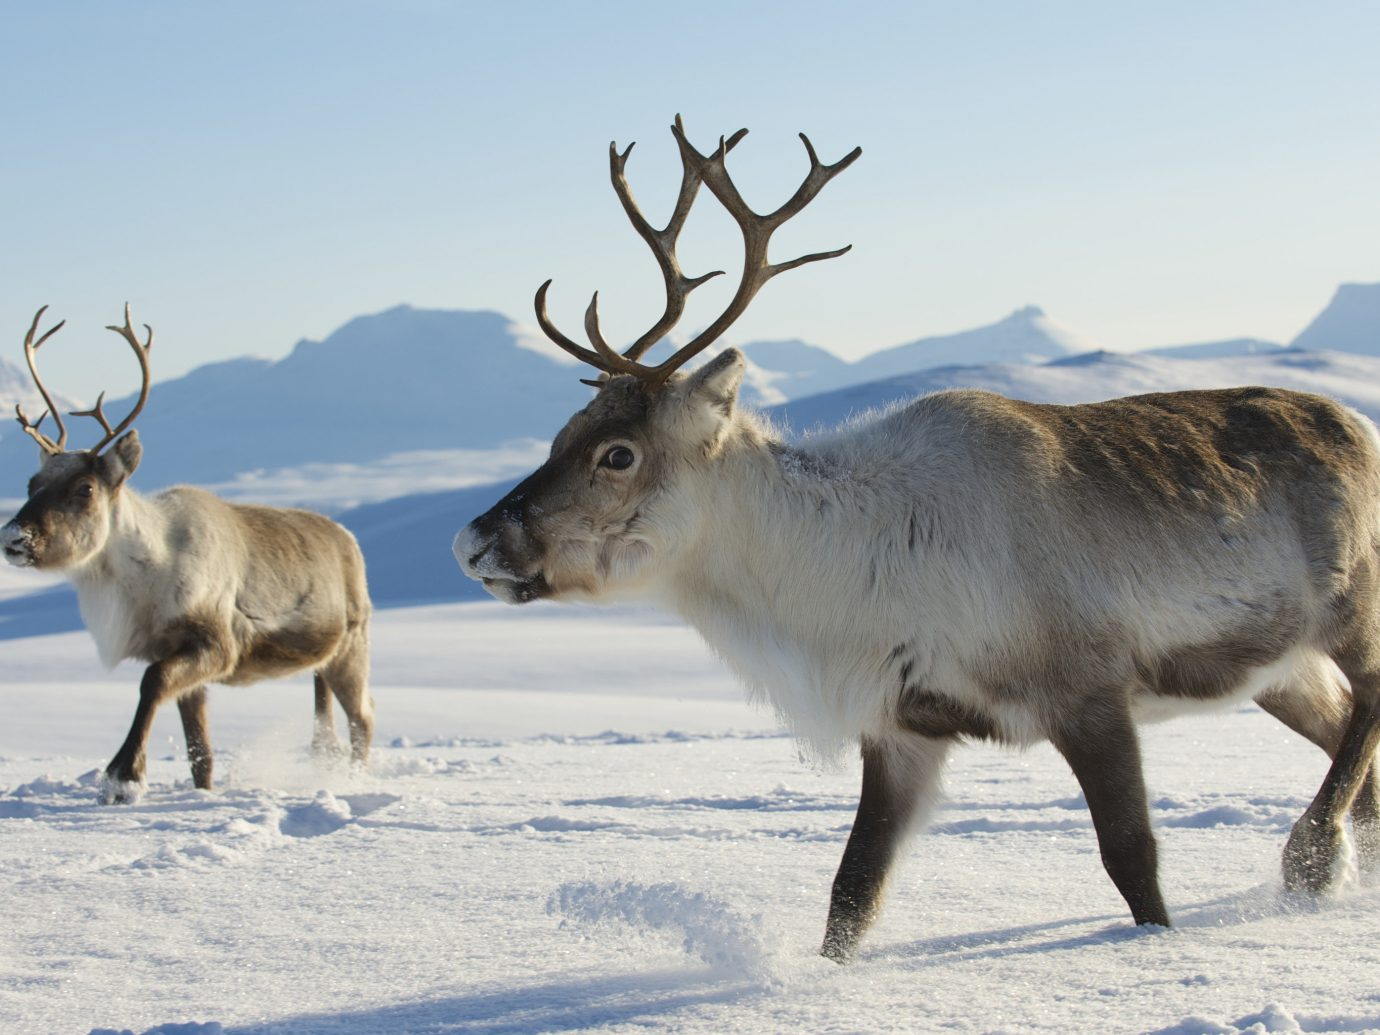 Adventure Boutique Hotels Romance Trip Ideas sky animal outdoor mammal deer reindeer Wildlife snow tundra freezing elk arctic Winter cattle like mammal antler cattle day